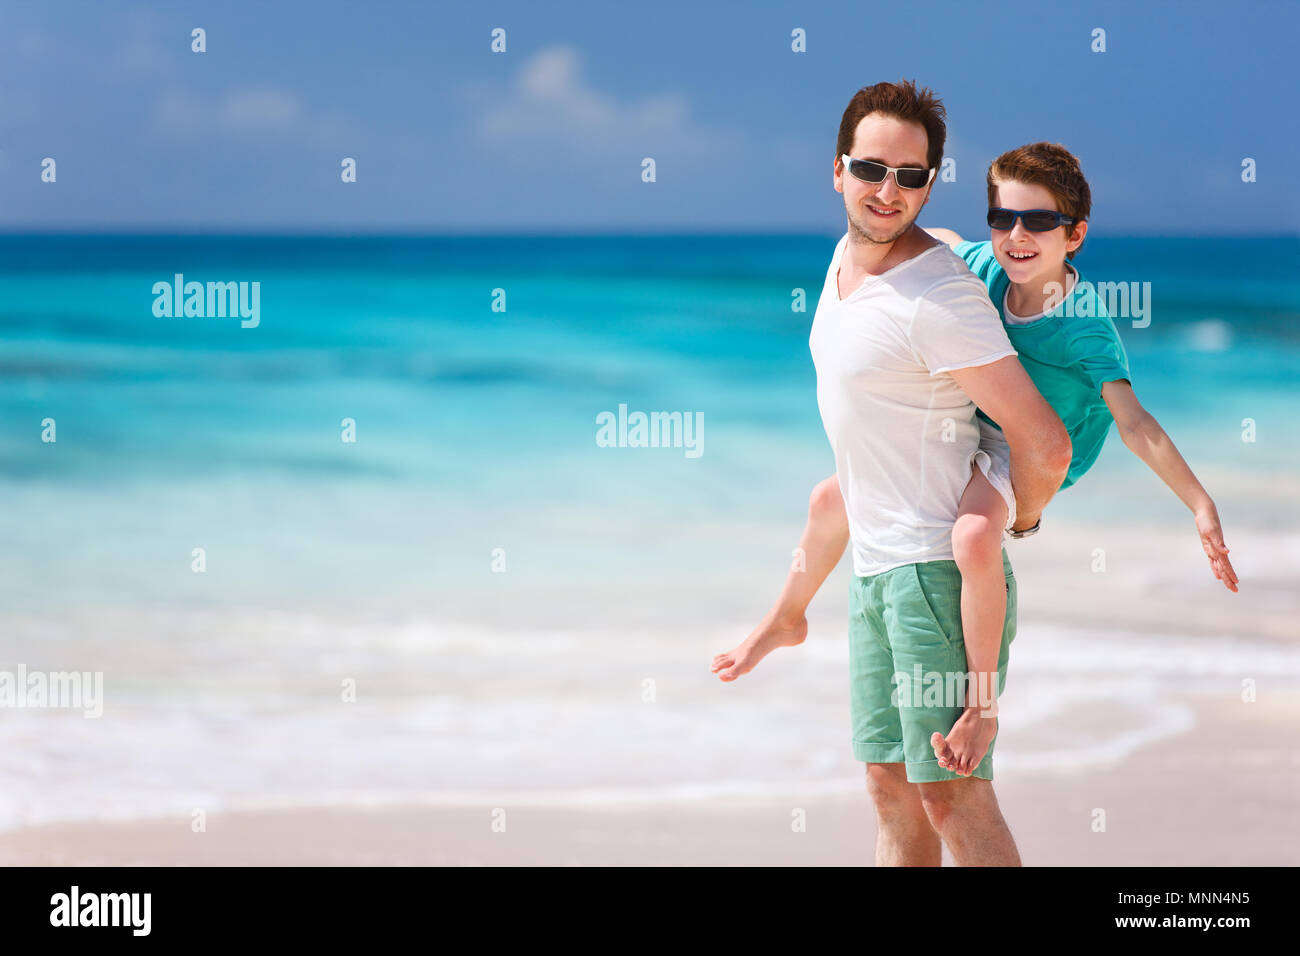 Portrait of happy father and son enjoying time at beach - Stock Image